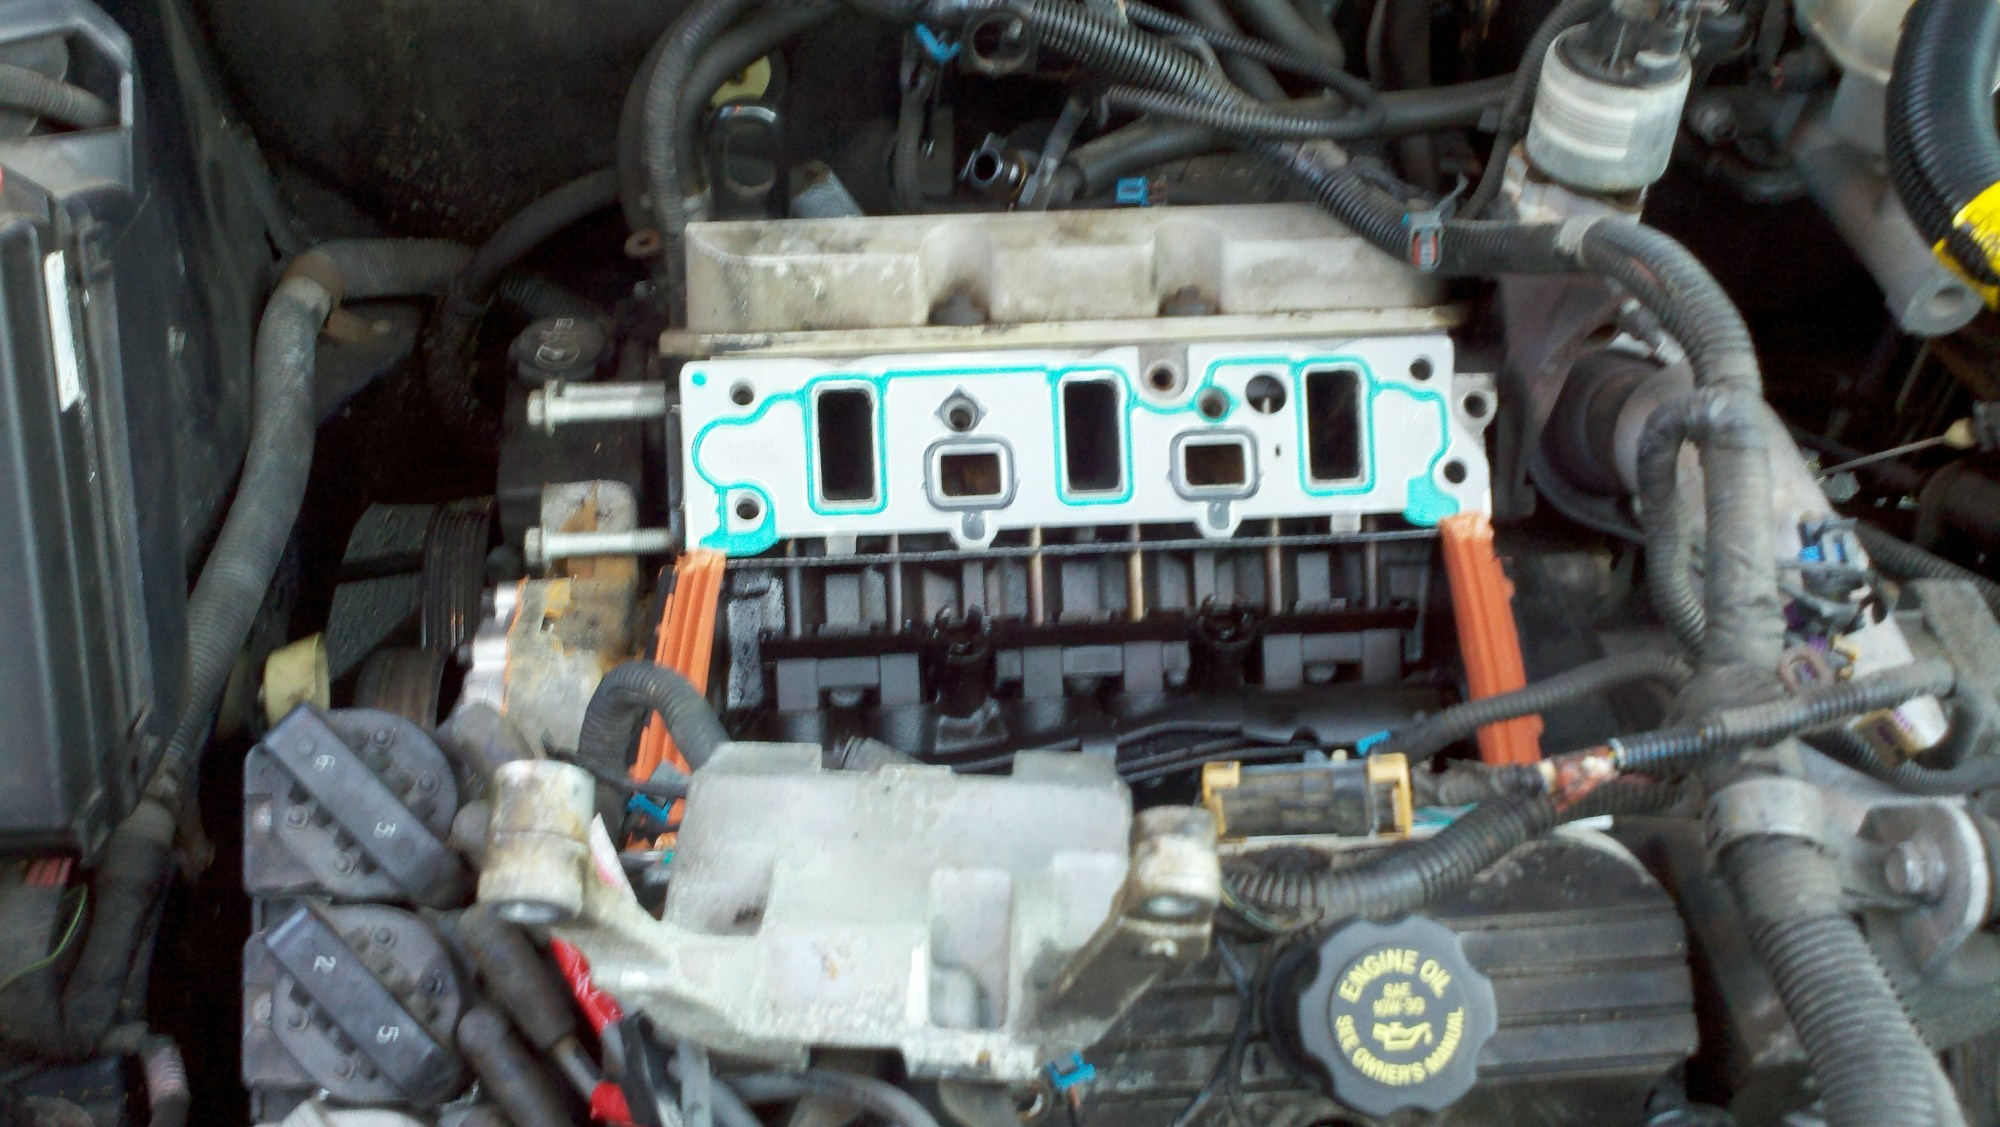 hight resolution of redesigned gasket is now how to fix 3 8l coolant leak daily tweak redesigned gasket is now 2002 pontiac grand prix intake manifold gasket diagram